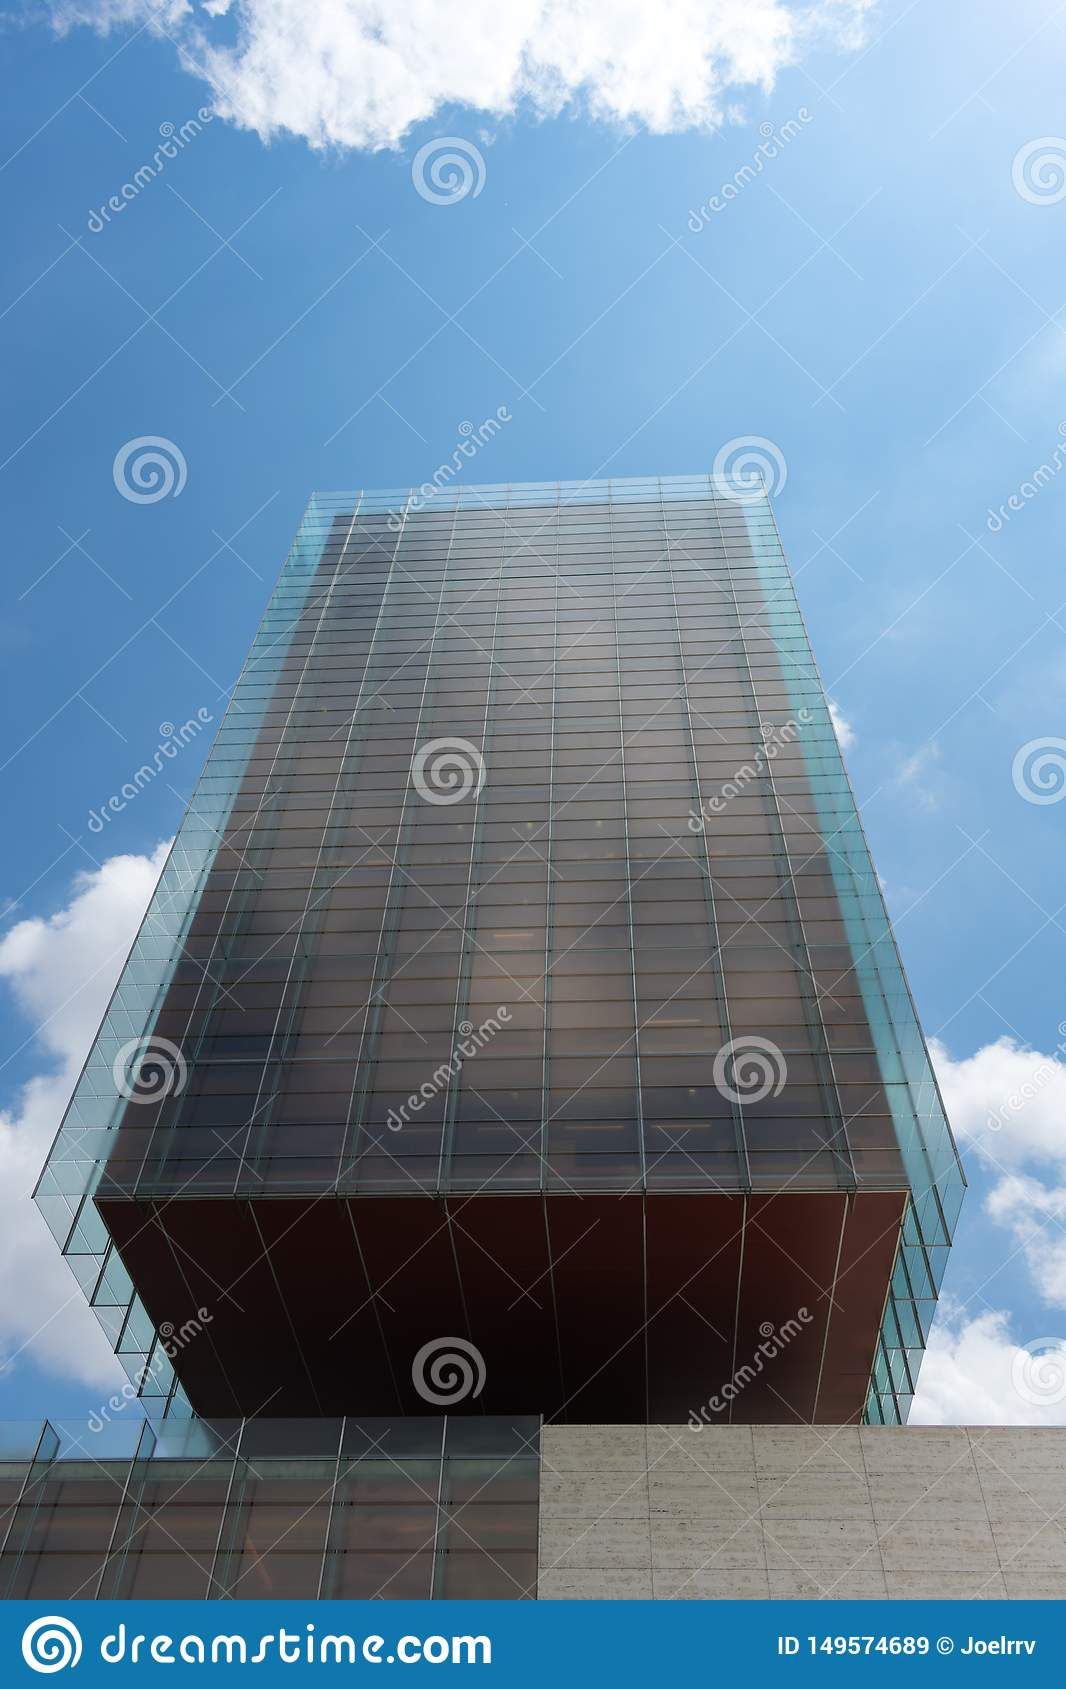 Madrid, Spain - May 21 2018: Front view of glass skyscraper in Madrid